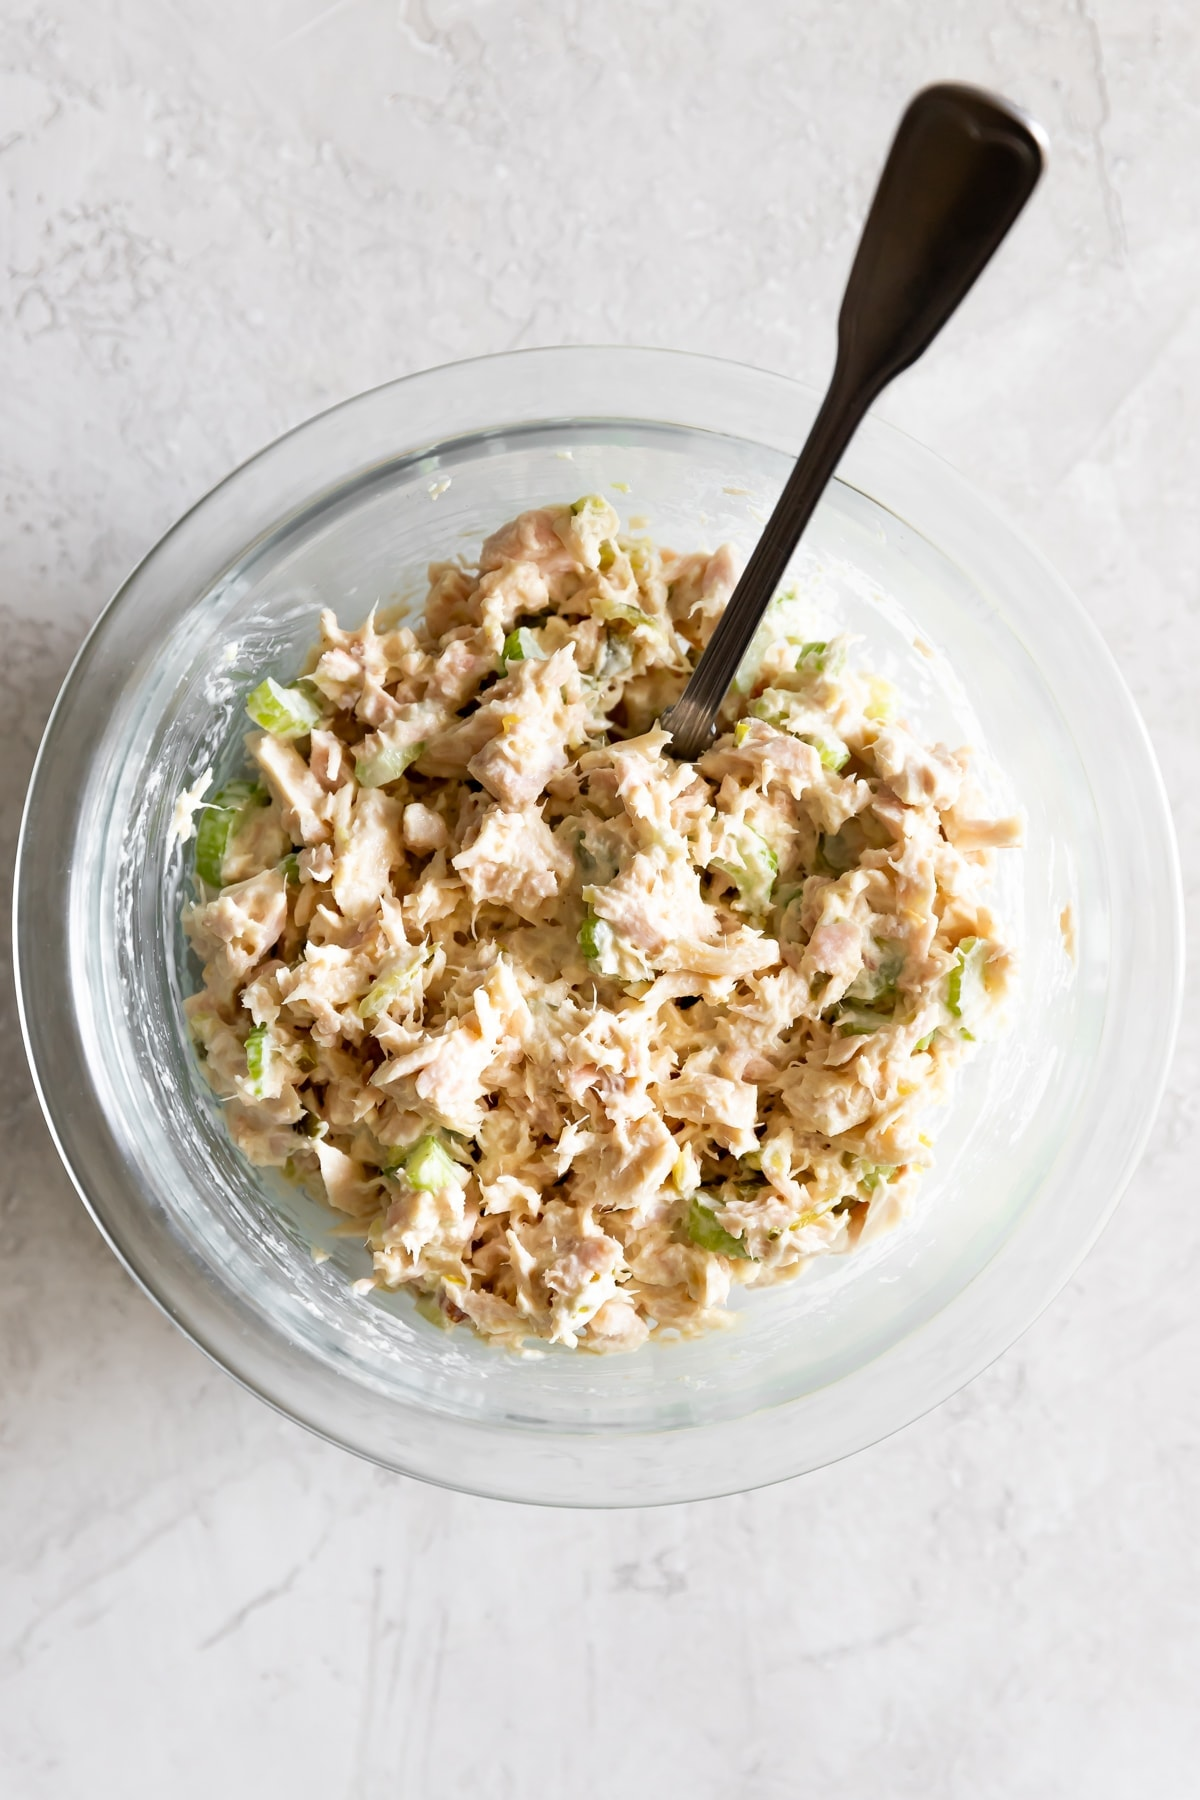 tuna salad mixed with all the ingredients in a clear bowl